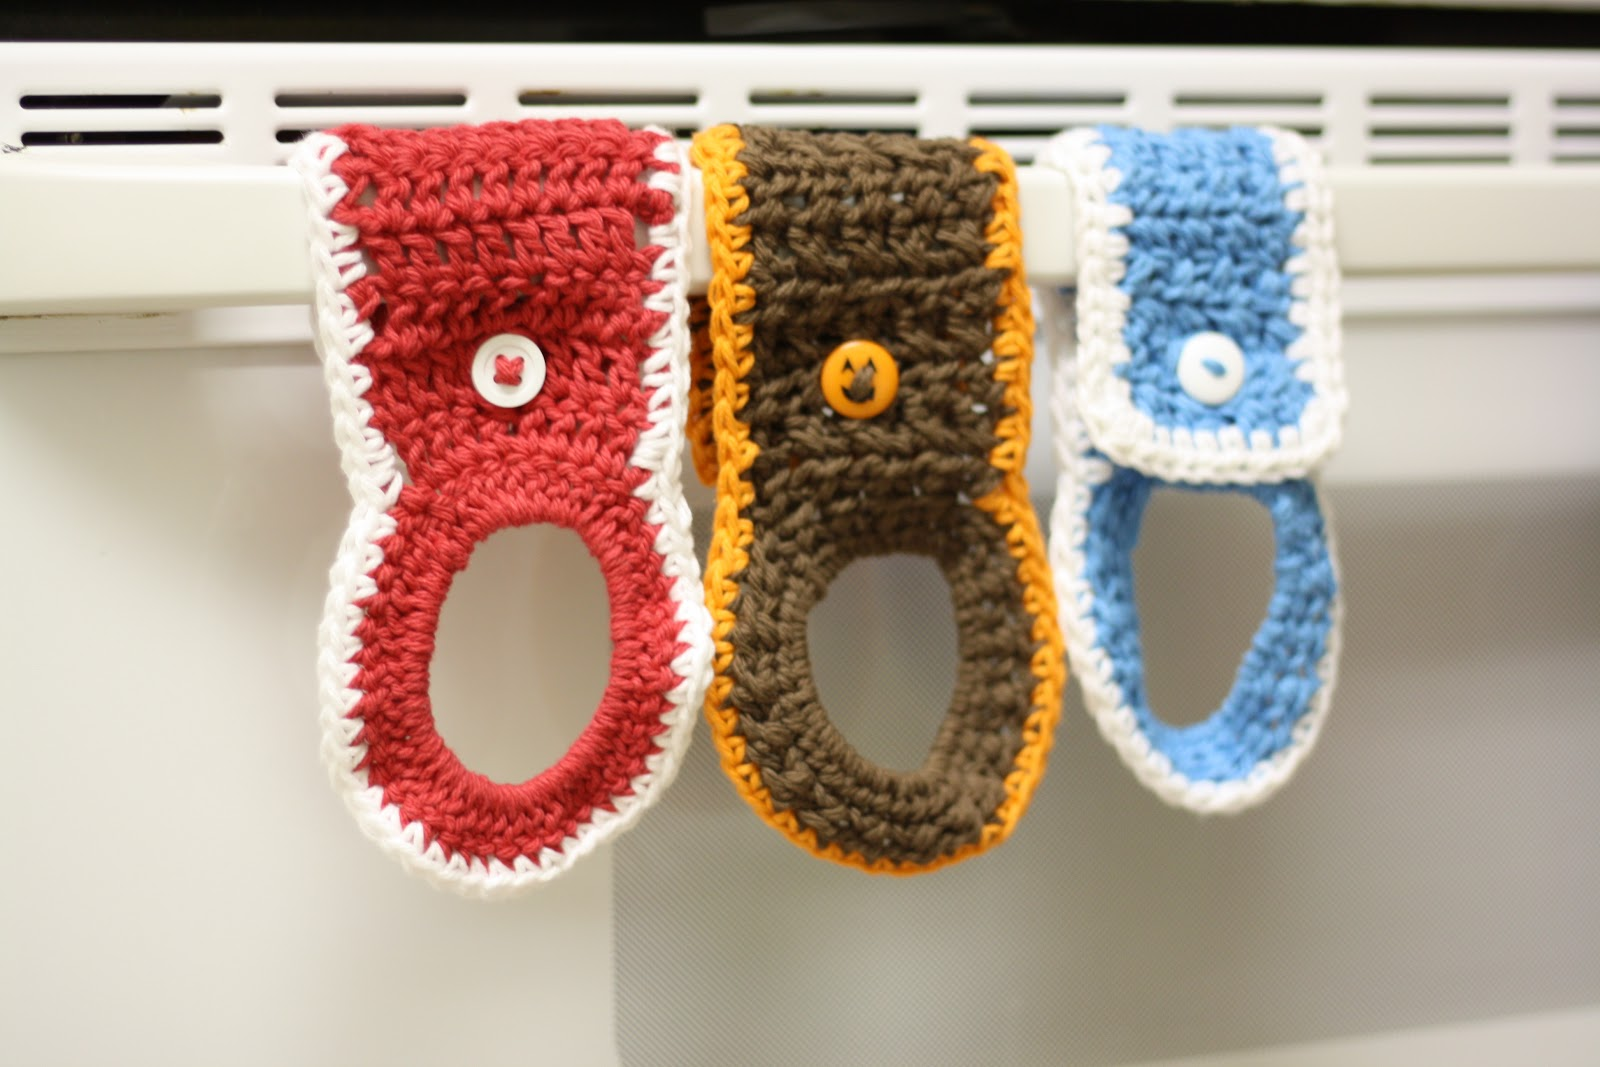 Crochet Patterns For Kitchen Towel Holders : Tales of a Crafty Mommy: Crochet Towel Holder Ring Tutorial